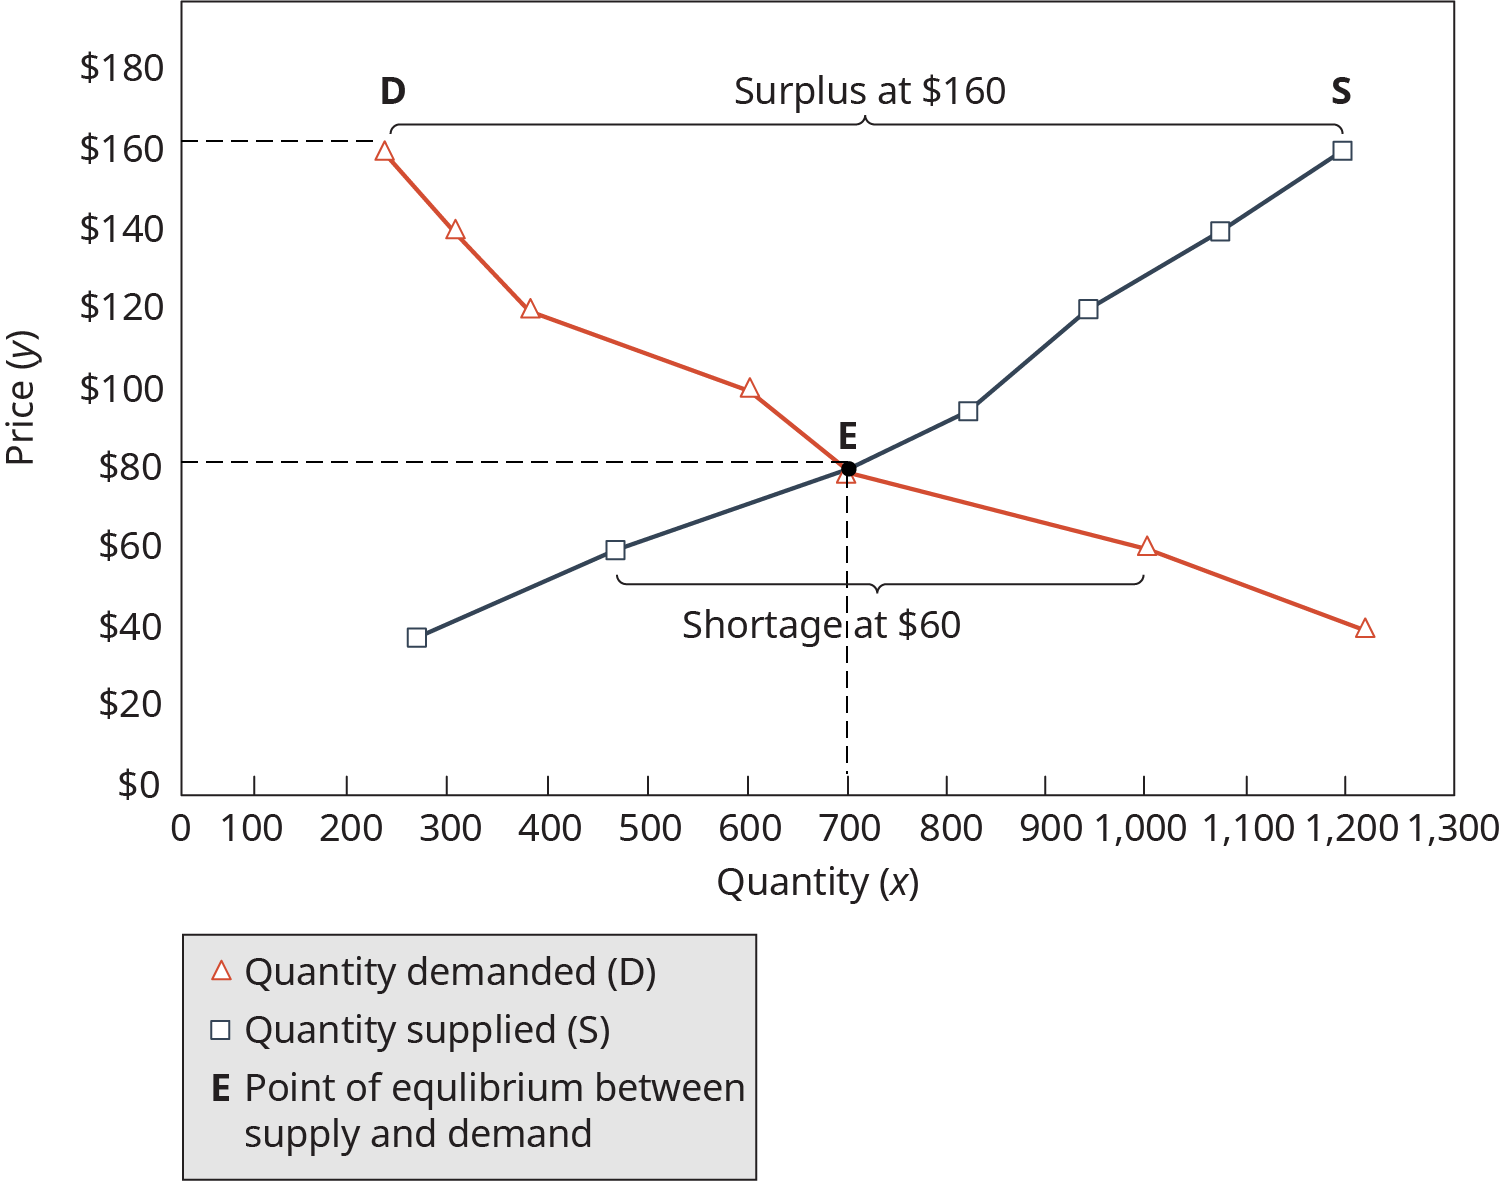 The x axis is labeled quantity, and the y axis is labeled price. The quantity demanded line, labeled D, falls from the upper left of the graph from approximate point 275, $160, to the bottom right of the graph at approximate point 1225, $45. The quantity supplied line, labeled S, rises from lower left to upper right, from approximate point 275, $40, to the upper right point 1200, $160. These lines intersect at a point labeled E, the point of equilibrium between supply and demand. Point E is at approximately 700, $80. Above point E, in between lines D and S, is labeled surplus at $160. Below point E, between lines D and S is labeled shortage at $60.